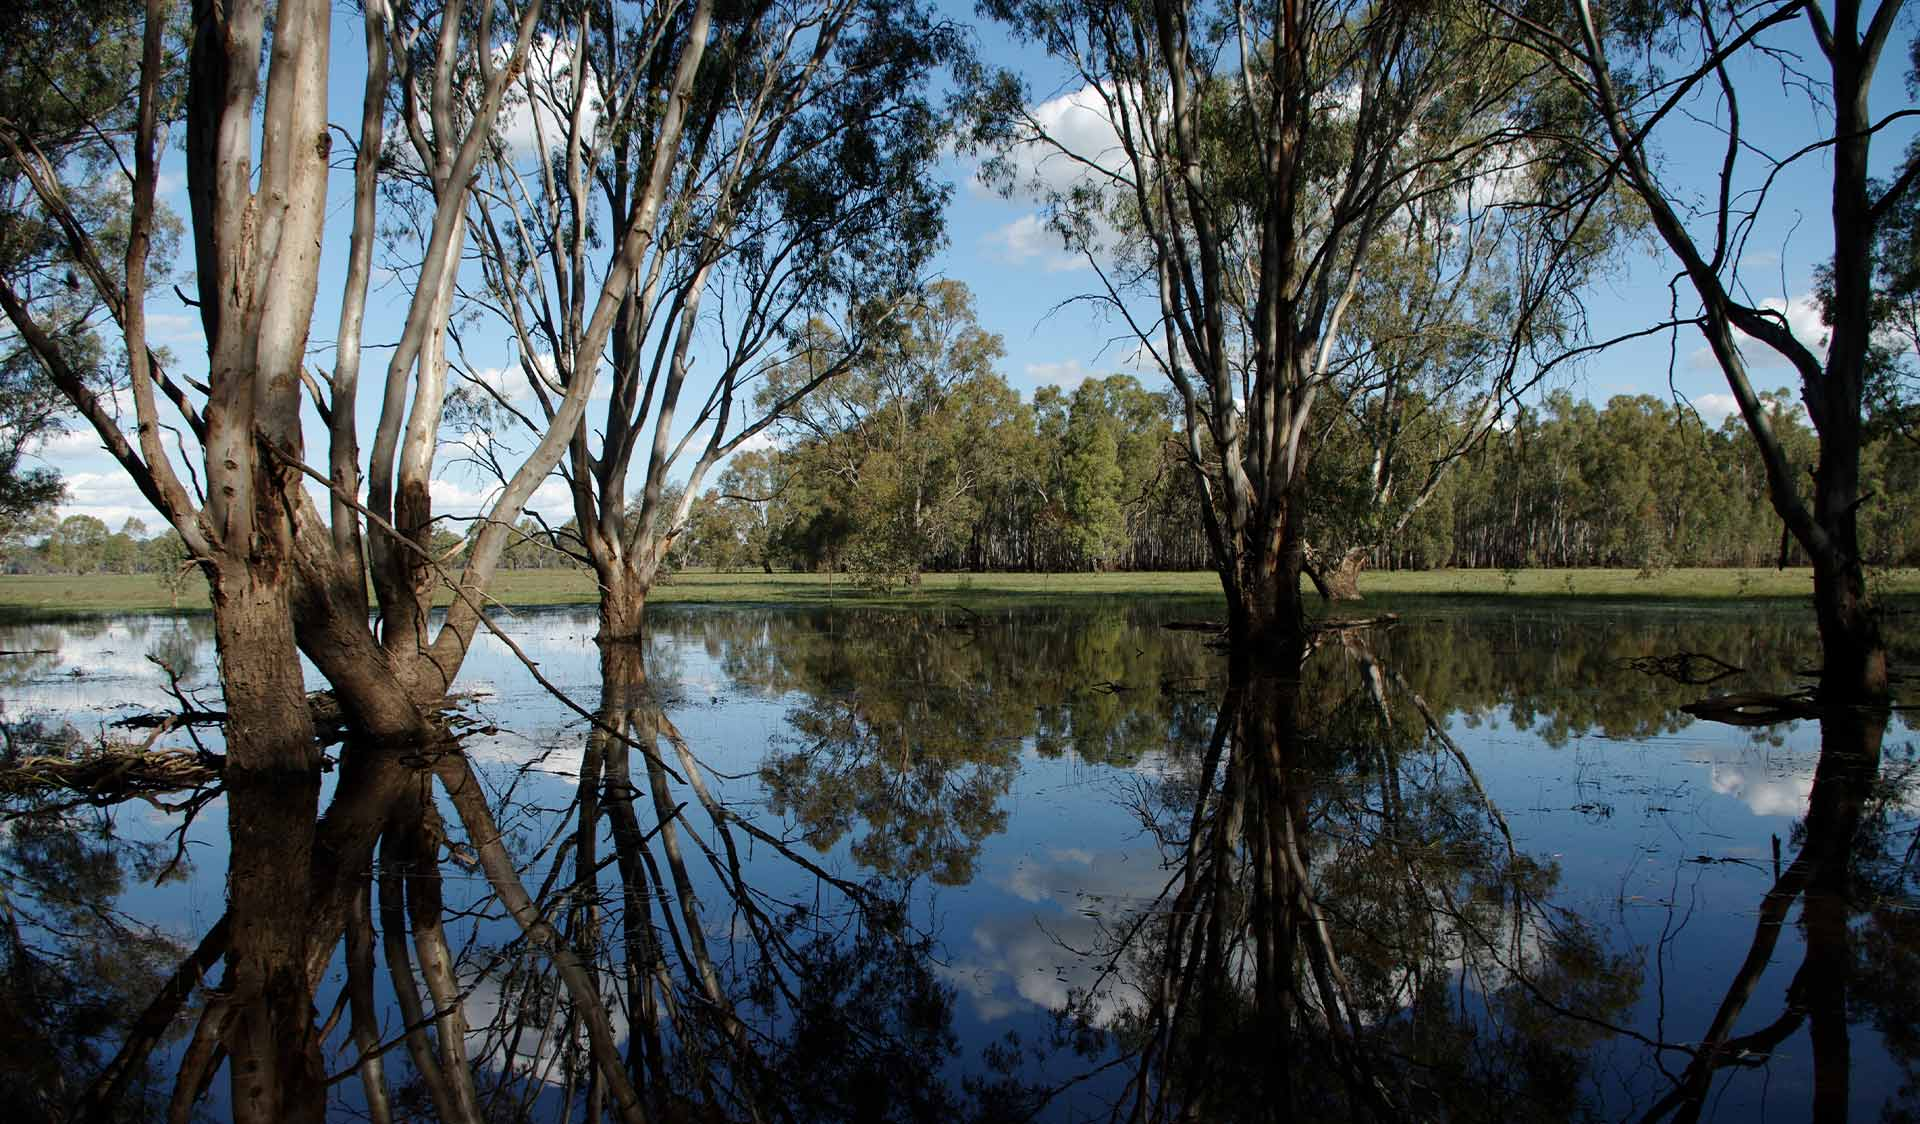 A reflection on the water's surface of river red gums in Barmah National Park